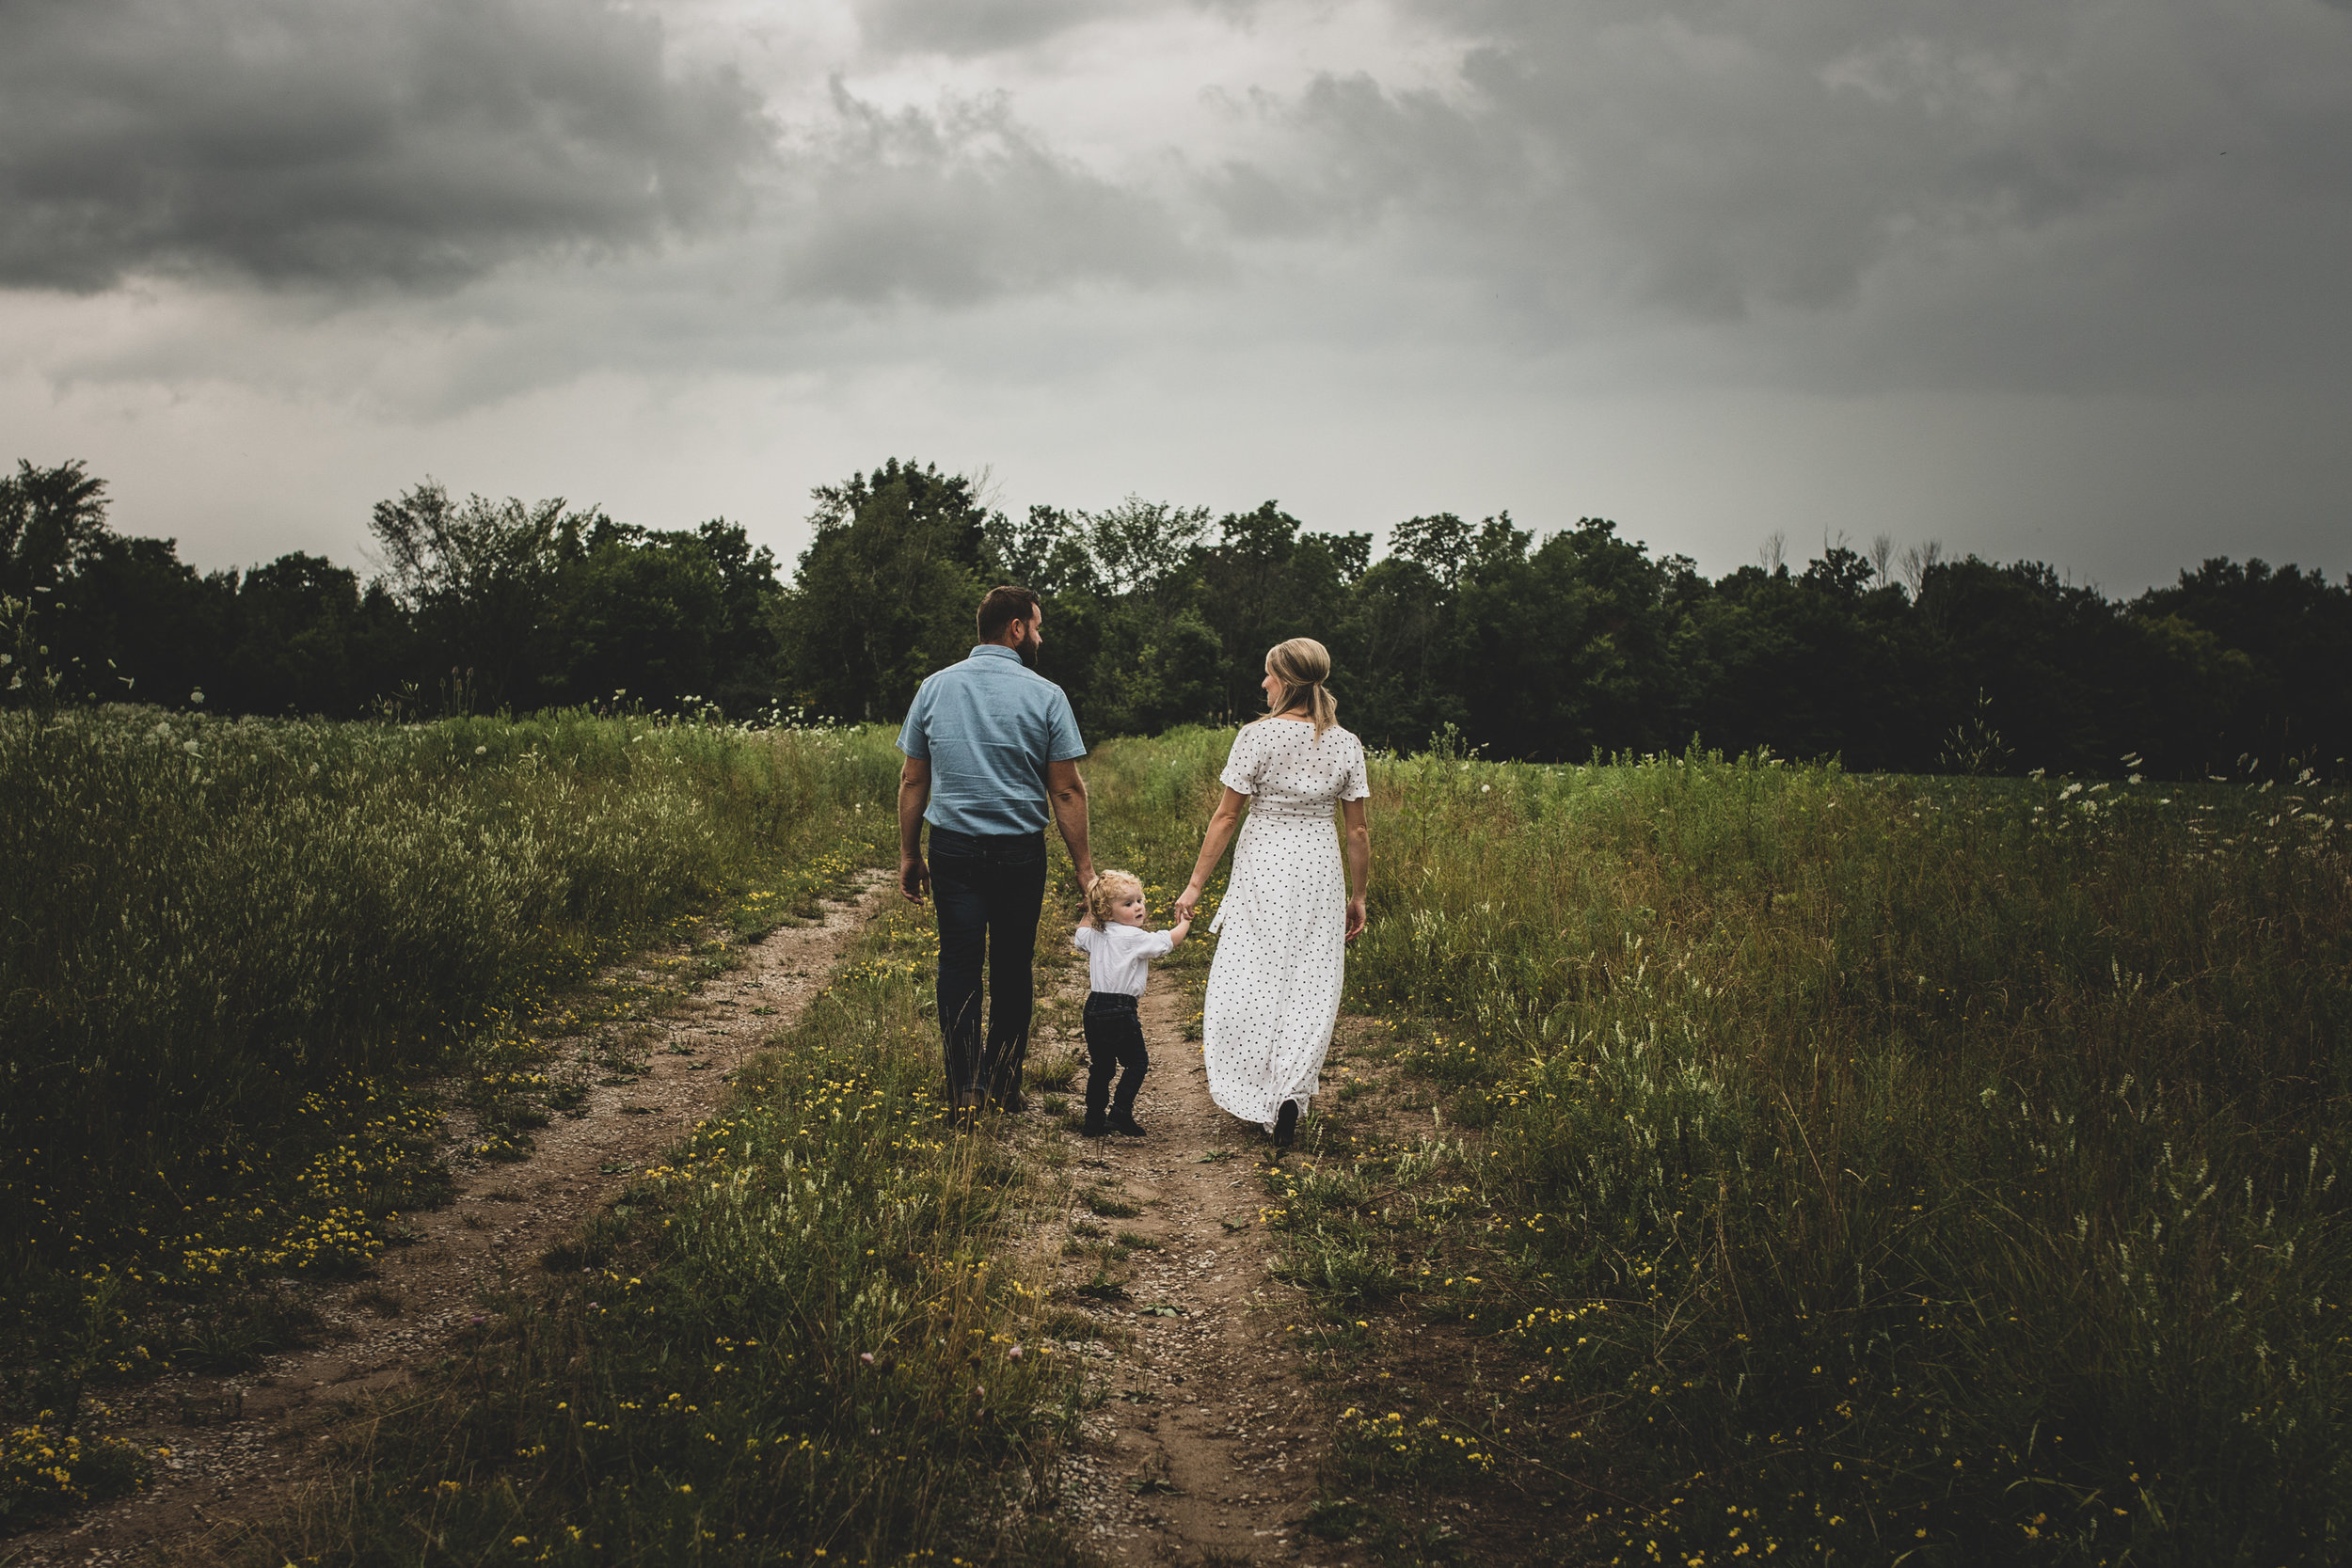 Family-agricultural-photographer-jodie-aldred-photography-rural-country-farm-farmers-ontario-london-huron-middlesex-elgin-chatham-elgin-rural-country-outdoors-wildflowers-storm-summer.jpg